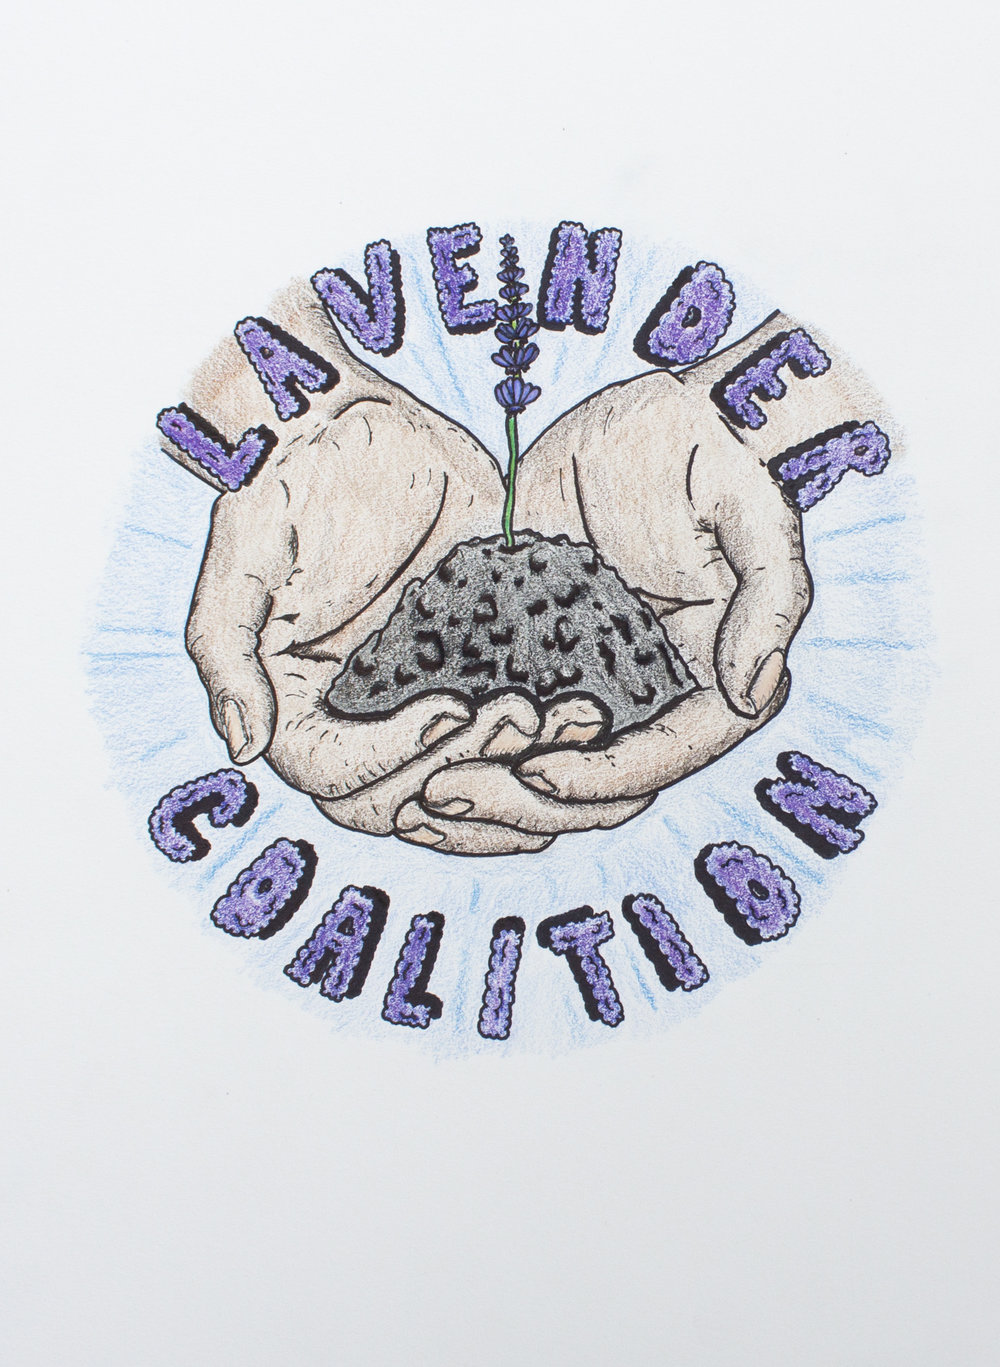 Lavender Coalition, colored pencil on paper.